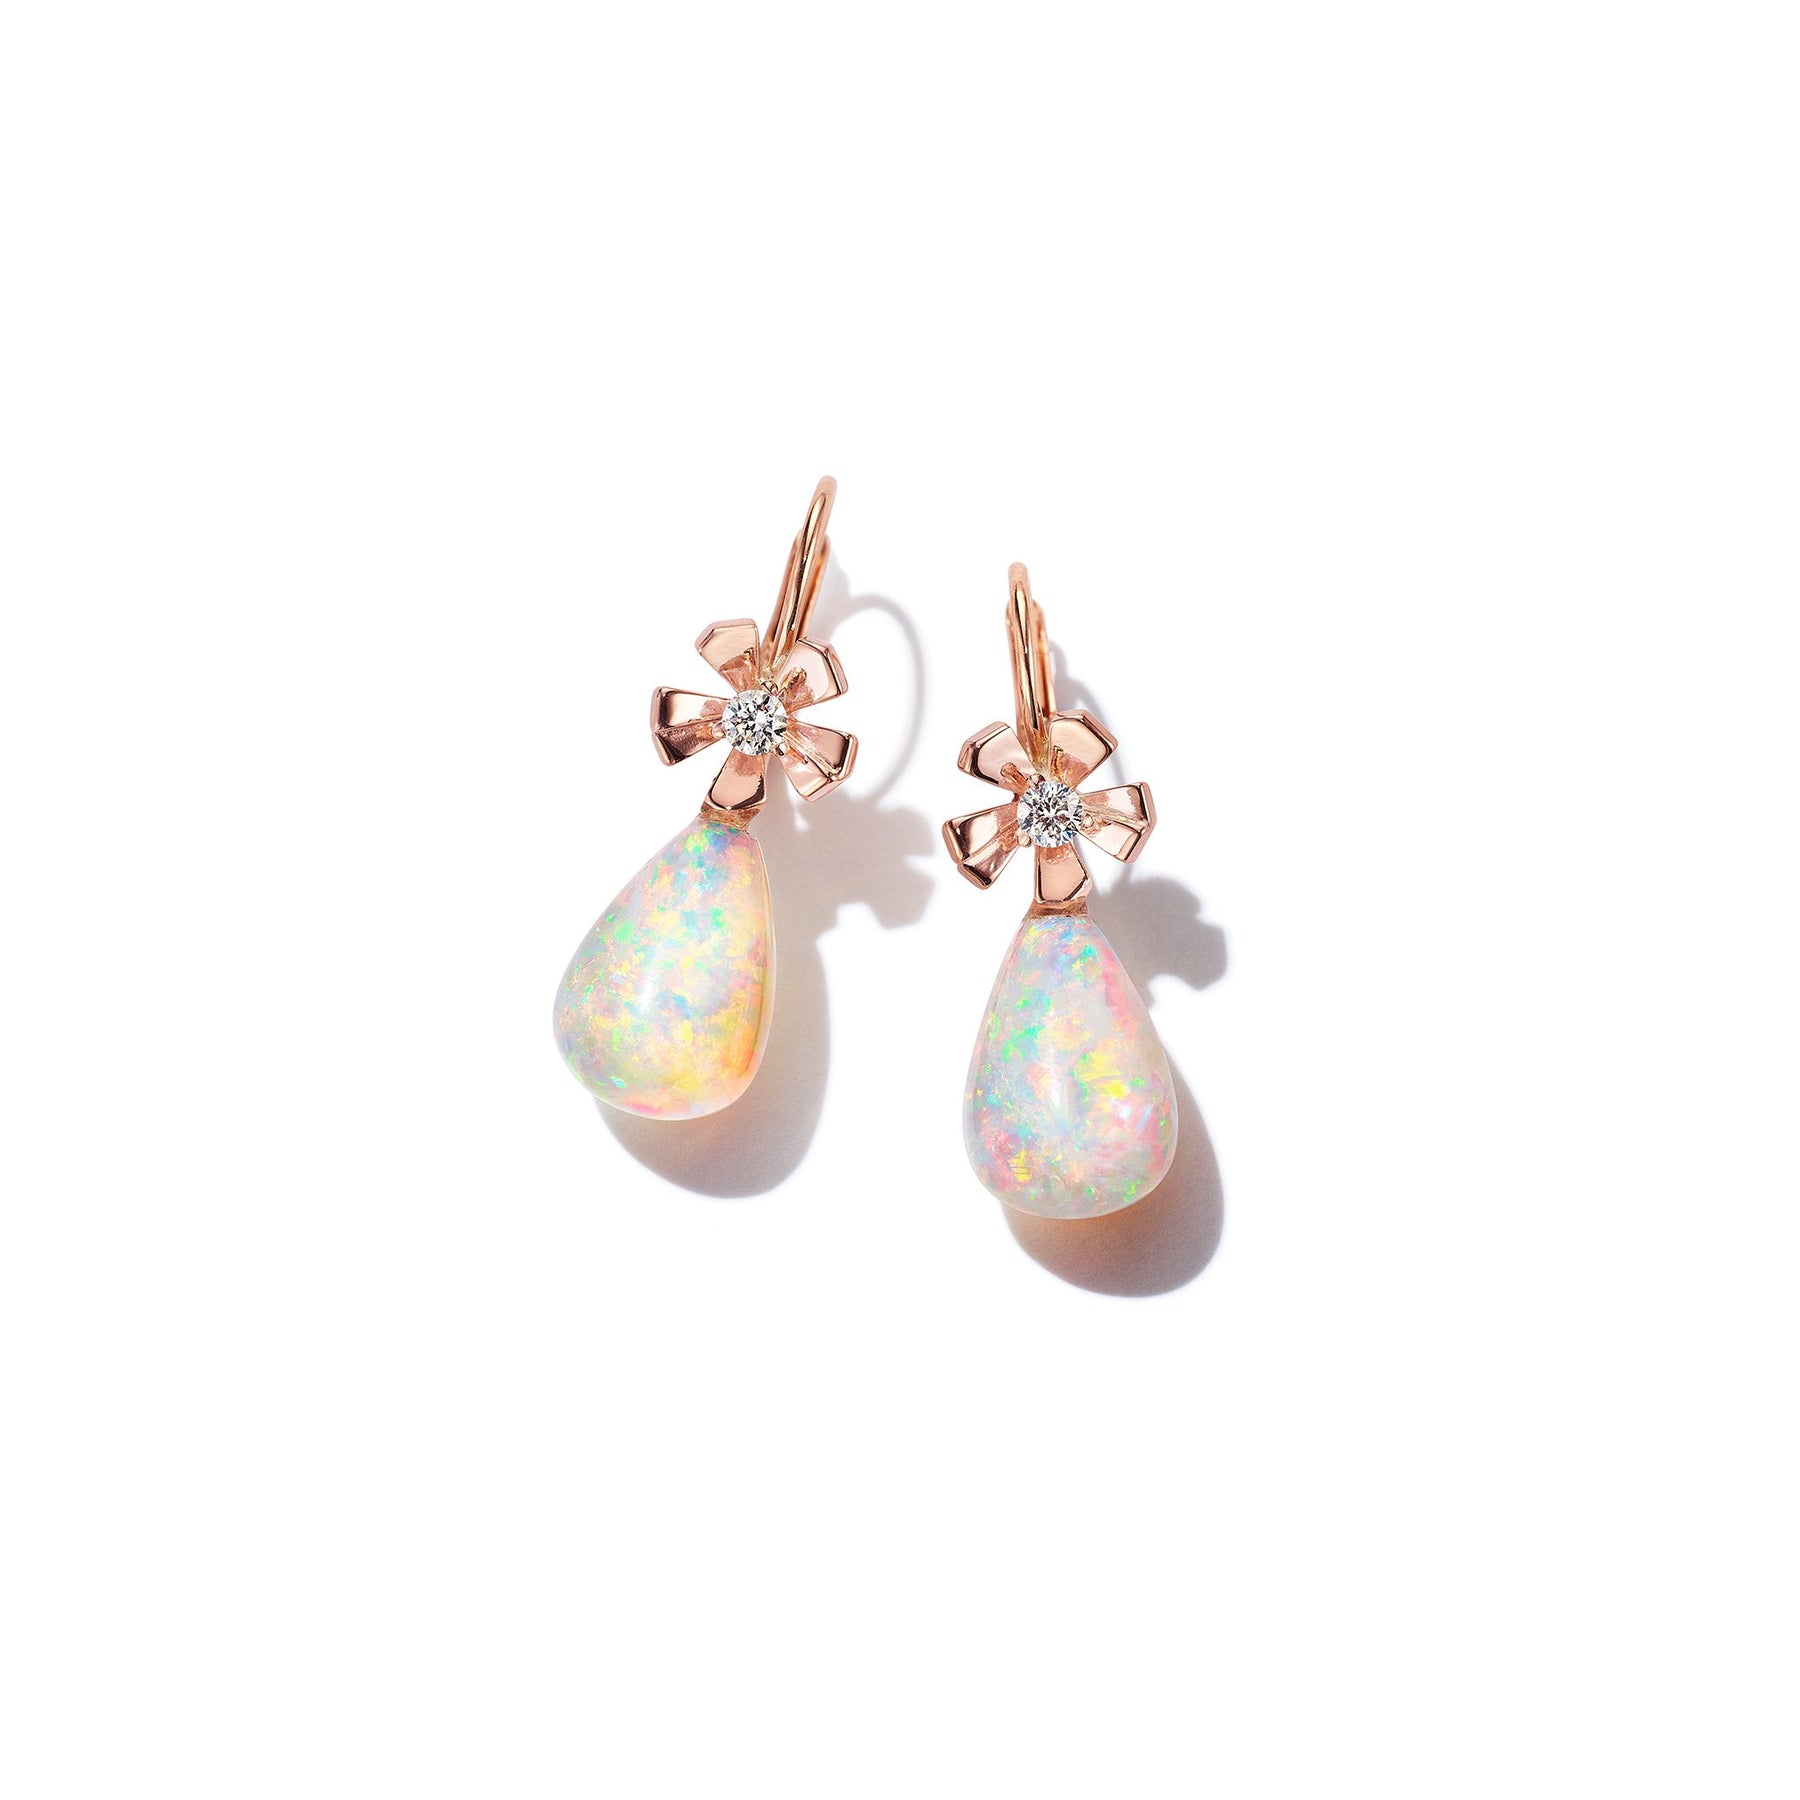 Mimi-So-Wonderland-Crystal-Opal-Teardrop-Earrings_18k Rose Gold